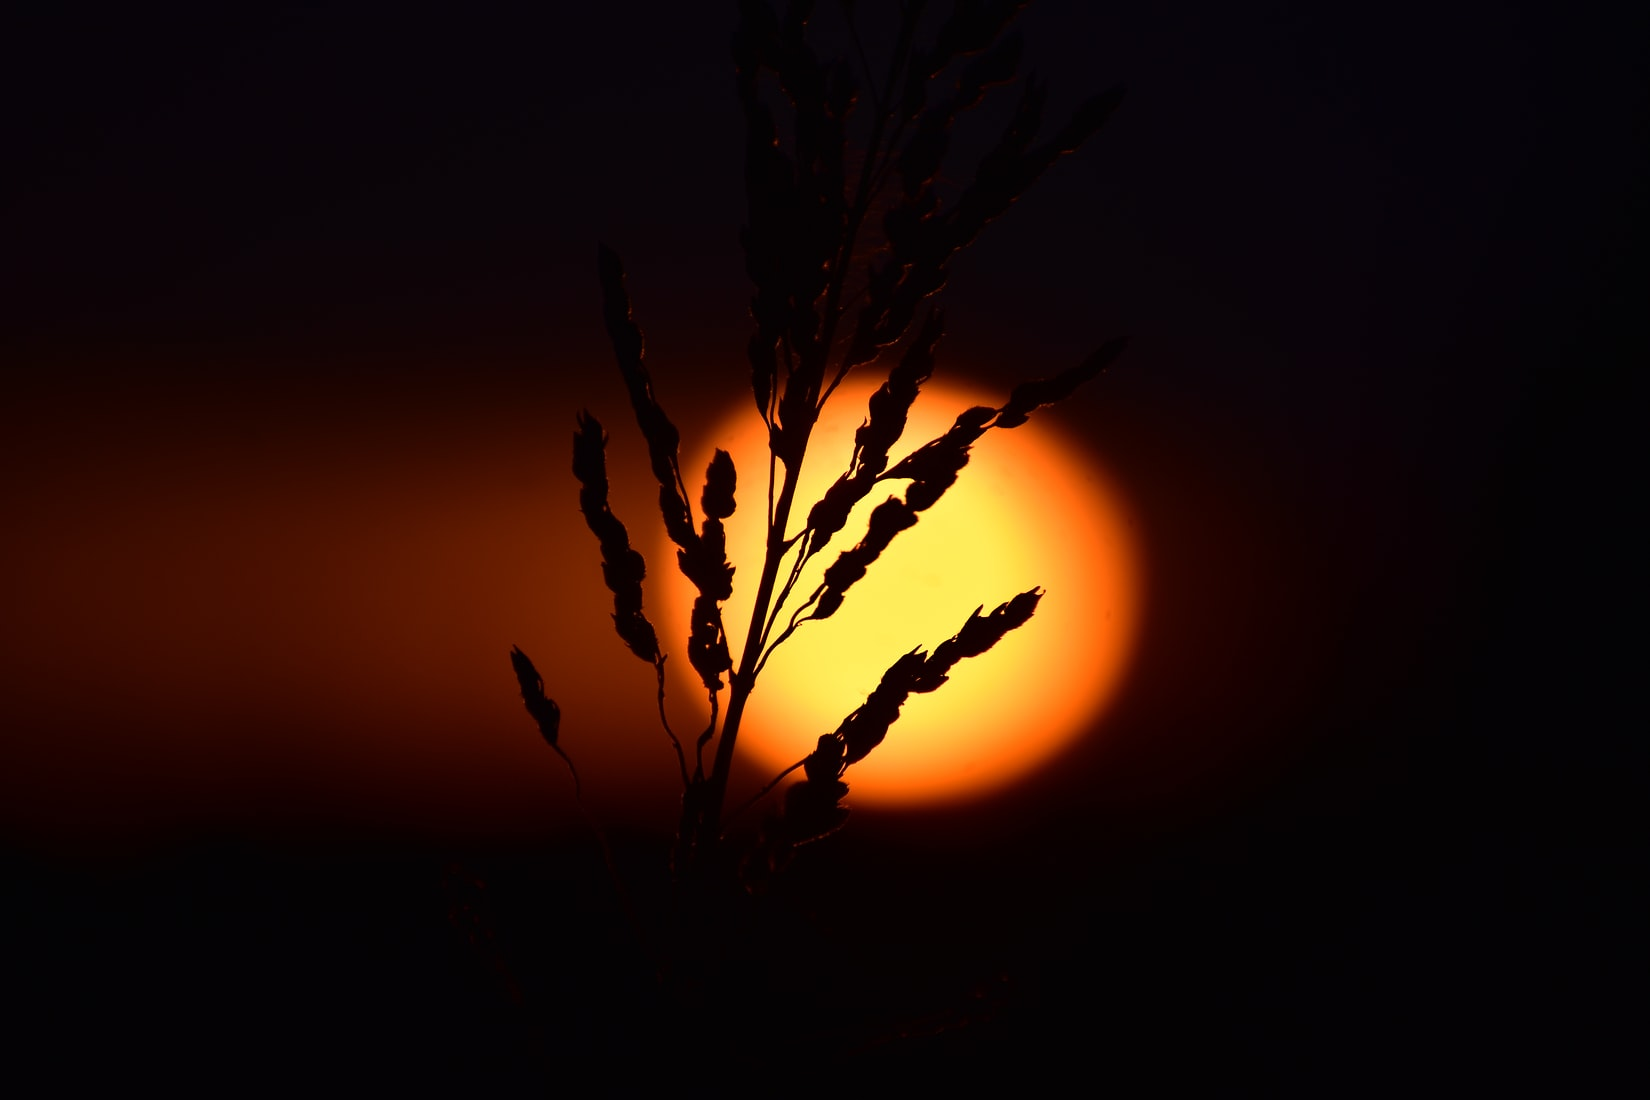 An unusually orange sun glows darkly beyond the shadowy silhouette of a plant.